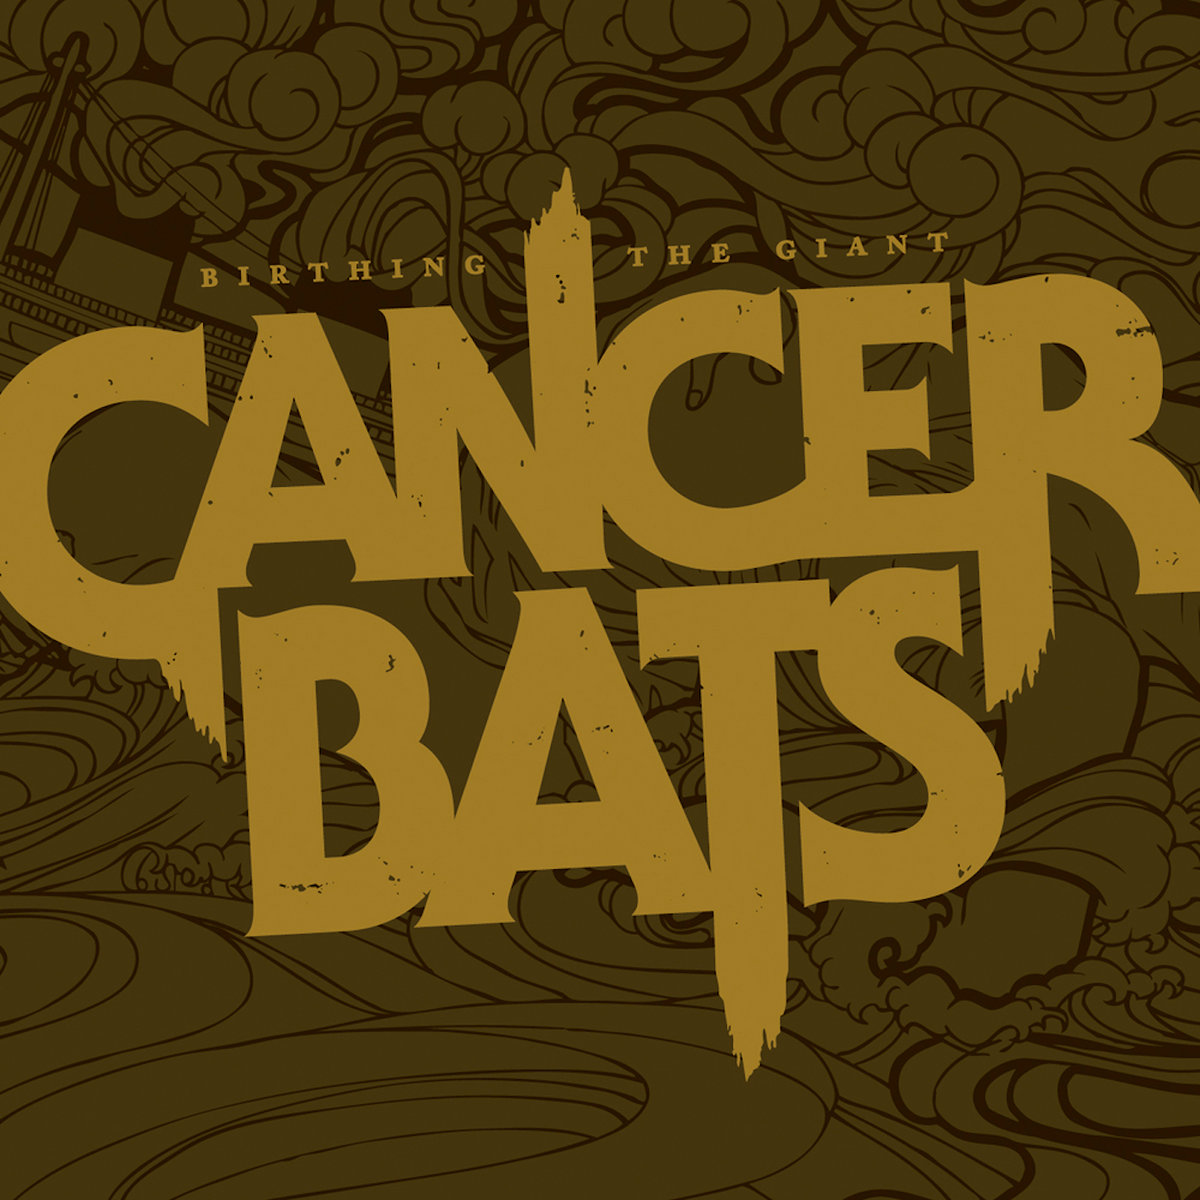 Cancer Bats - Birthing The Giant LP